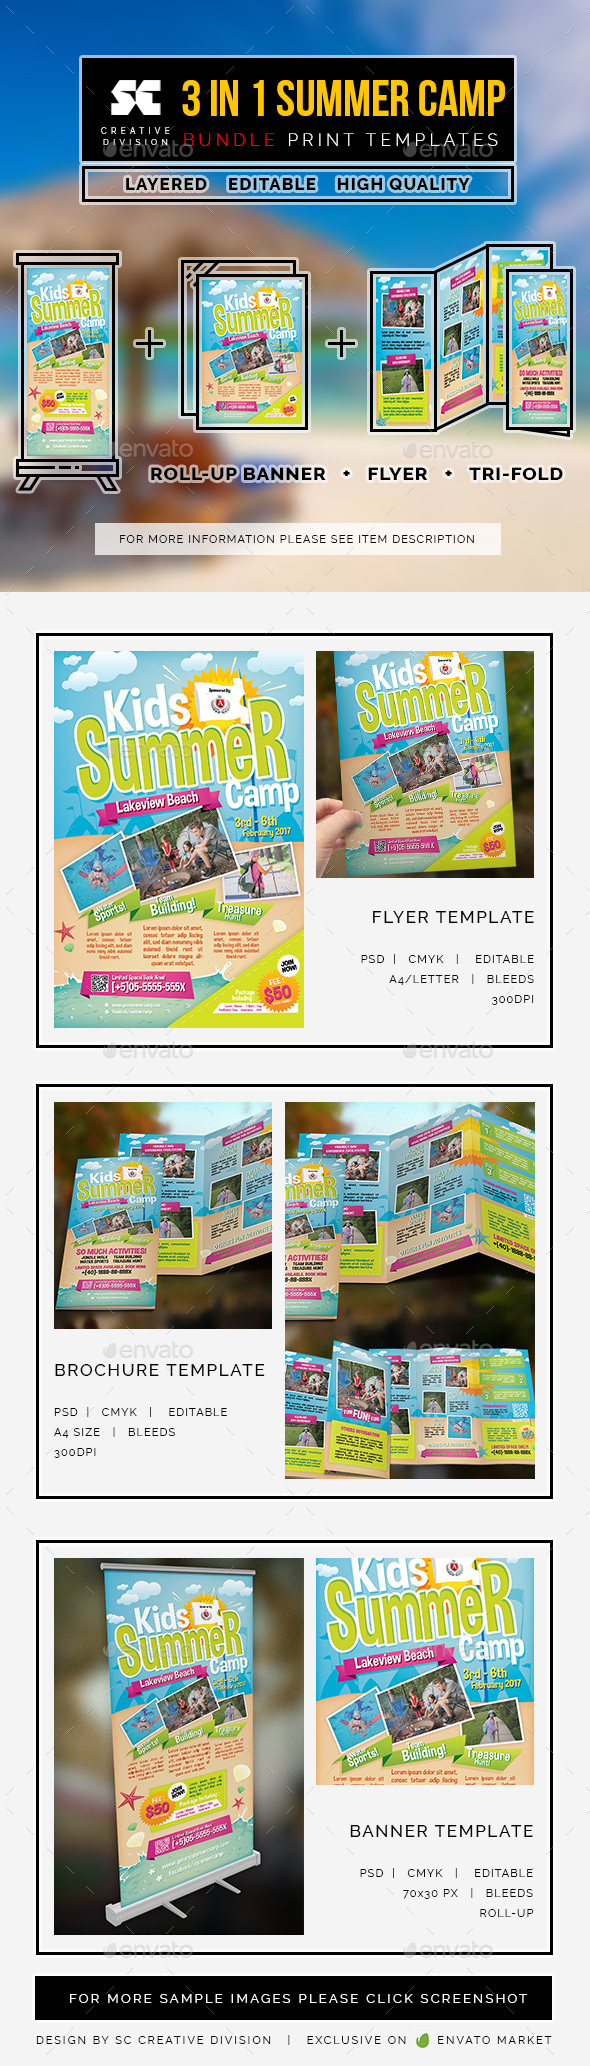 Kids Summer Camp Bundle 3 In 1 - Miscellaneous Print Templates